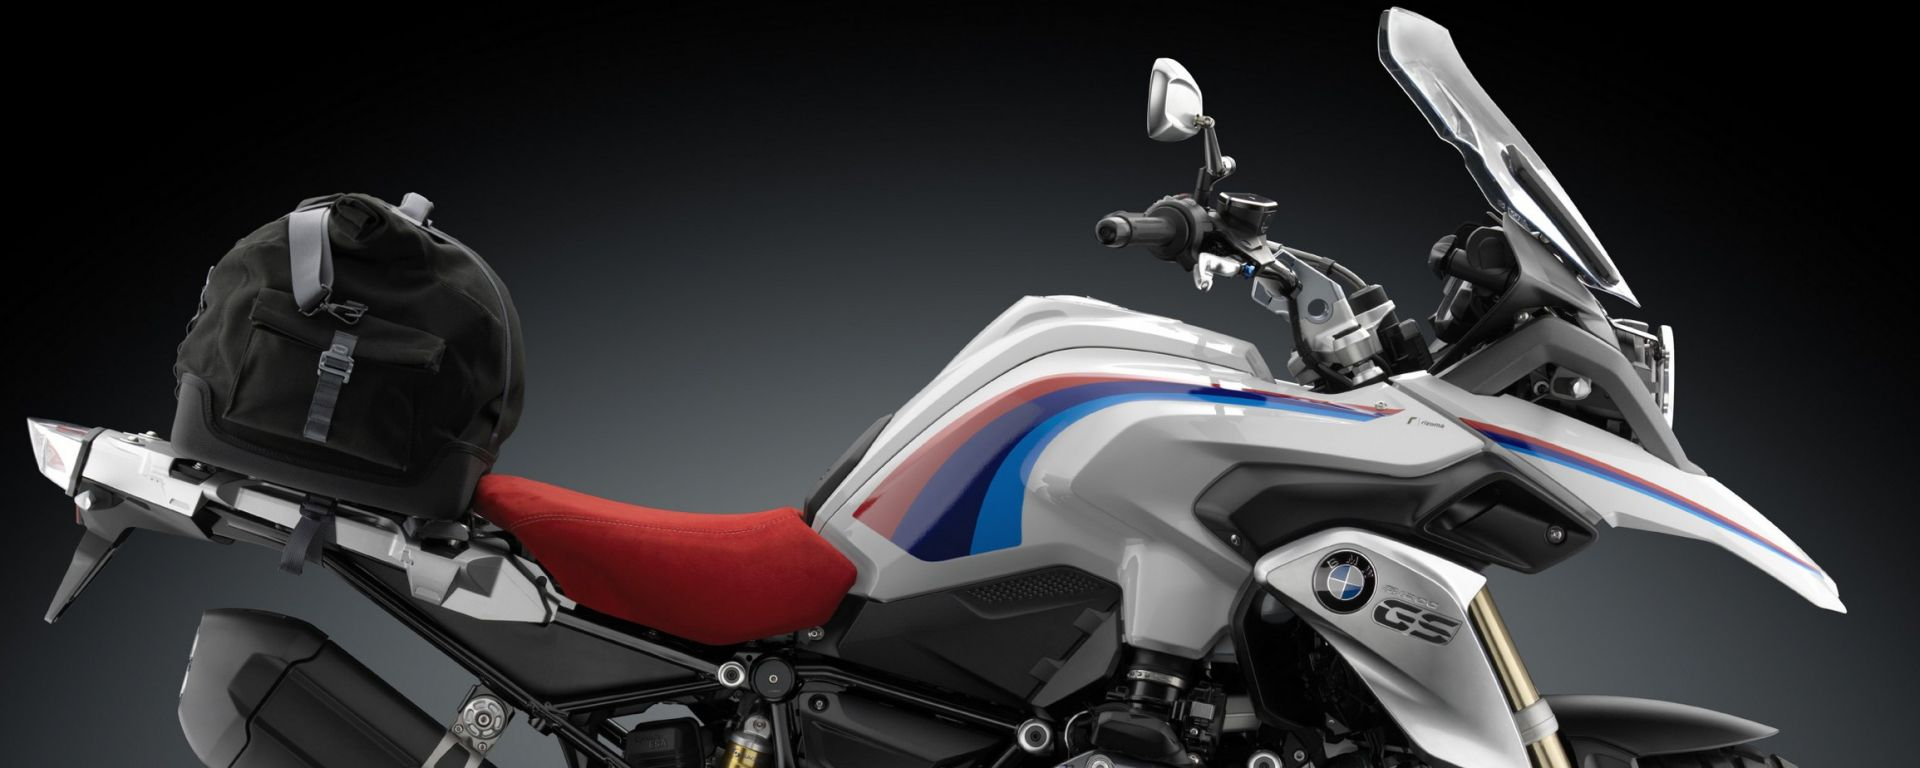 Rizoma: Accessory Line per BMW R 1200 GS